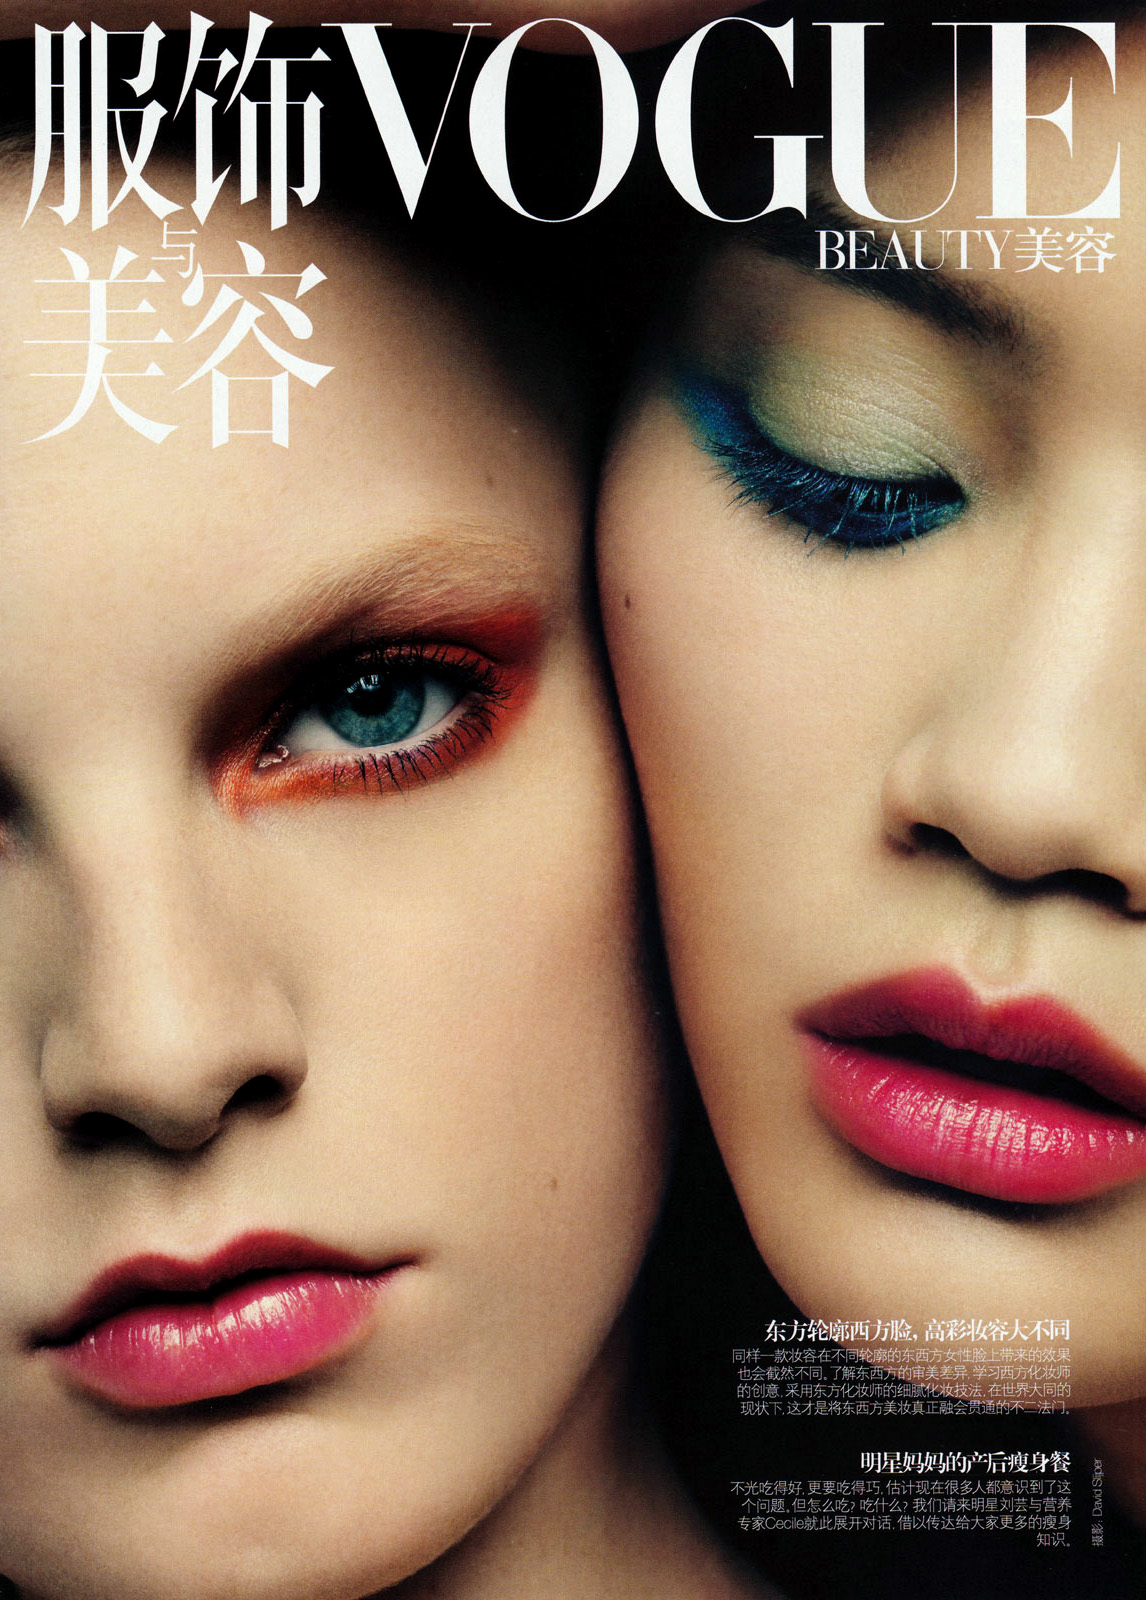 vogue beauty ming china xi hanne odiele gaby editorial april magazine models asian makeup eyeshadow pink lips covers asia vouge